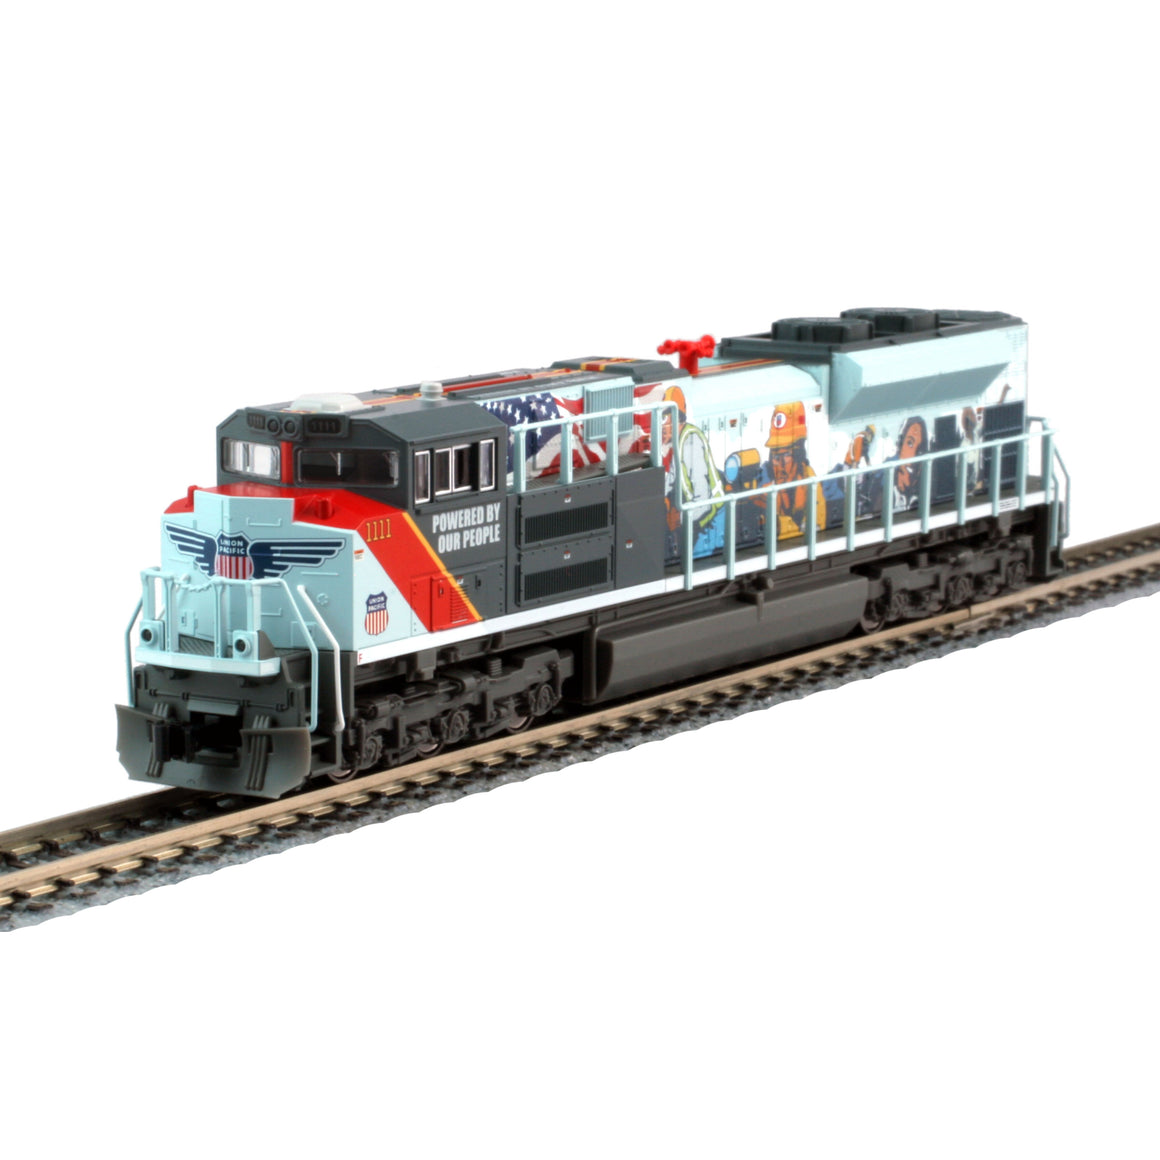 N Scale: EMD SD70ACe - DCC Ready - Union Pacific 'Powered by our People'